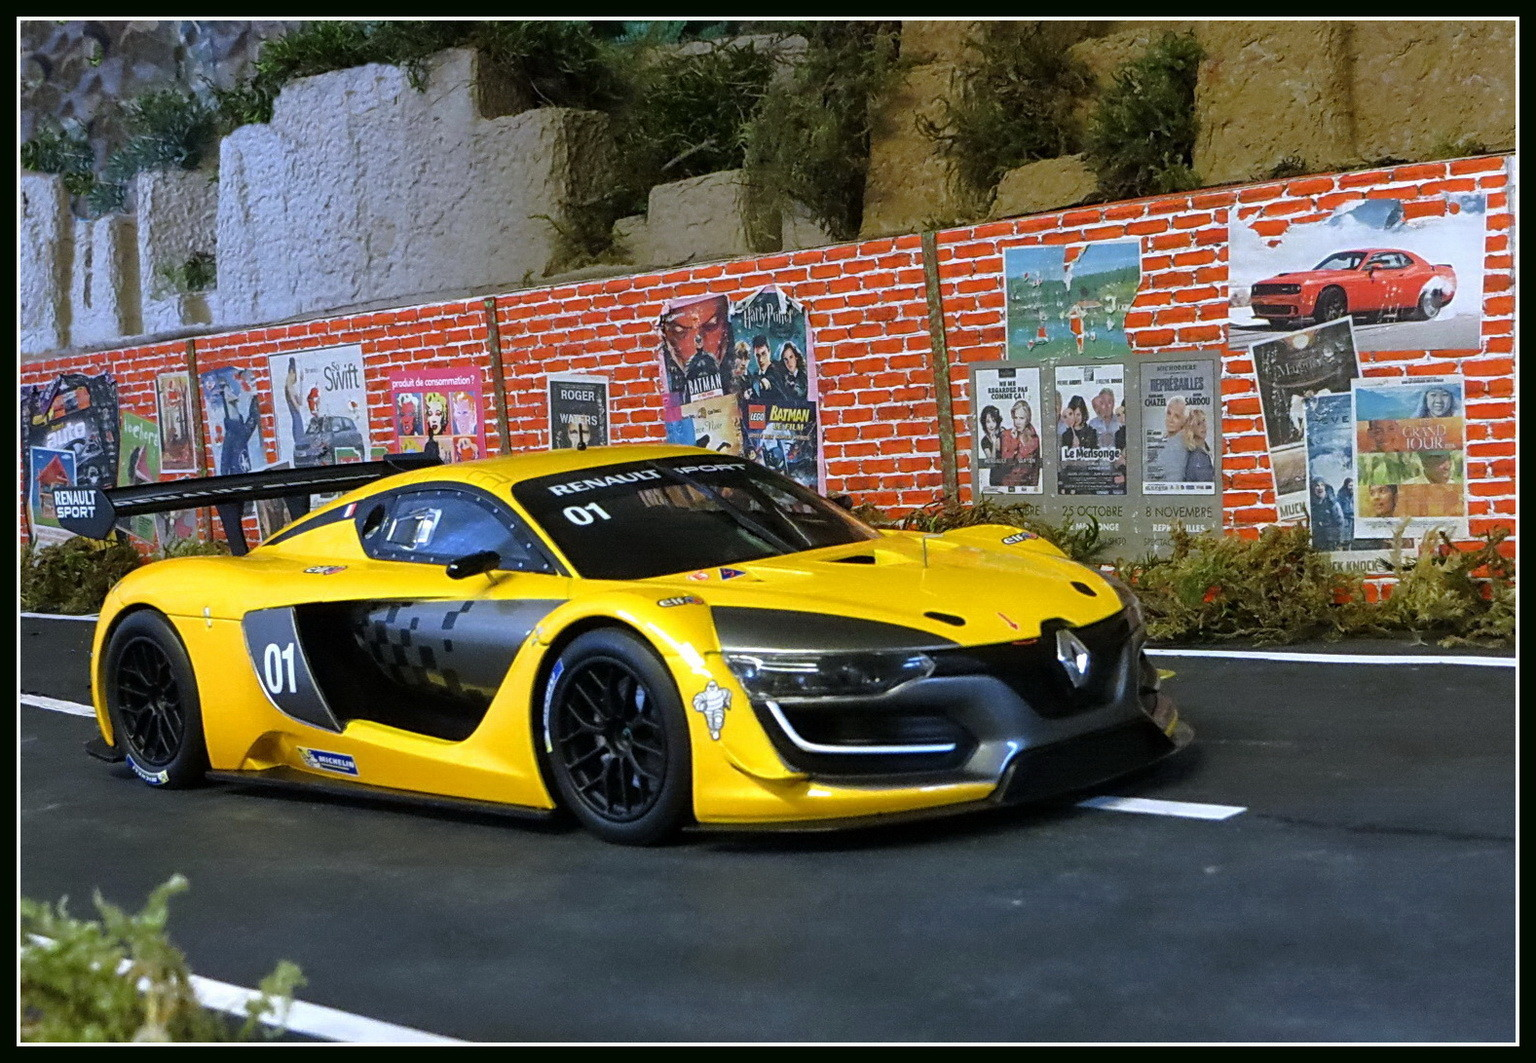 renault-rs 01-2015-030